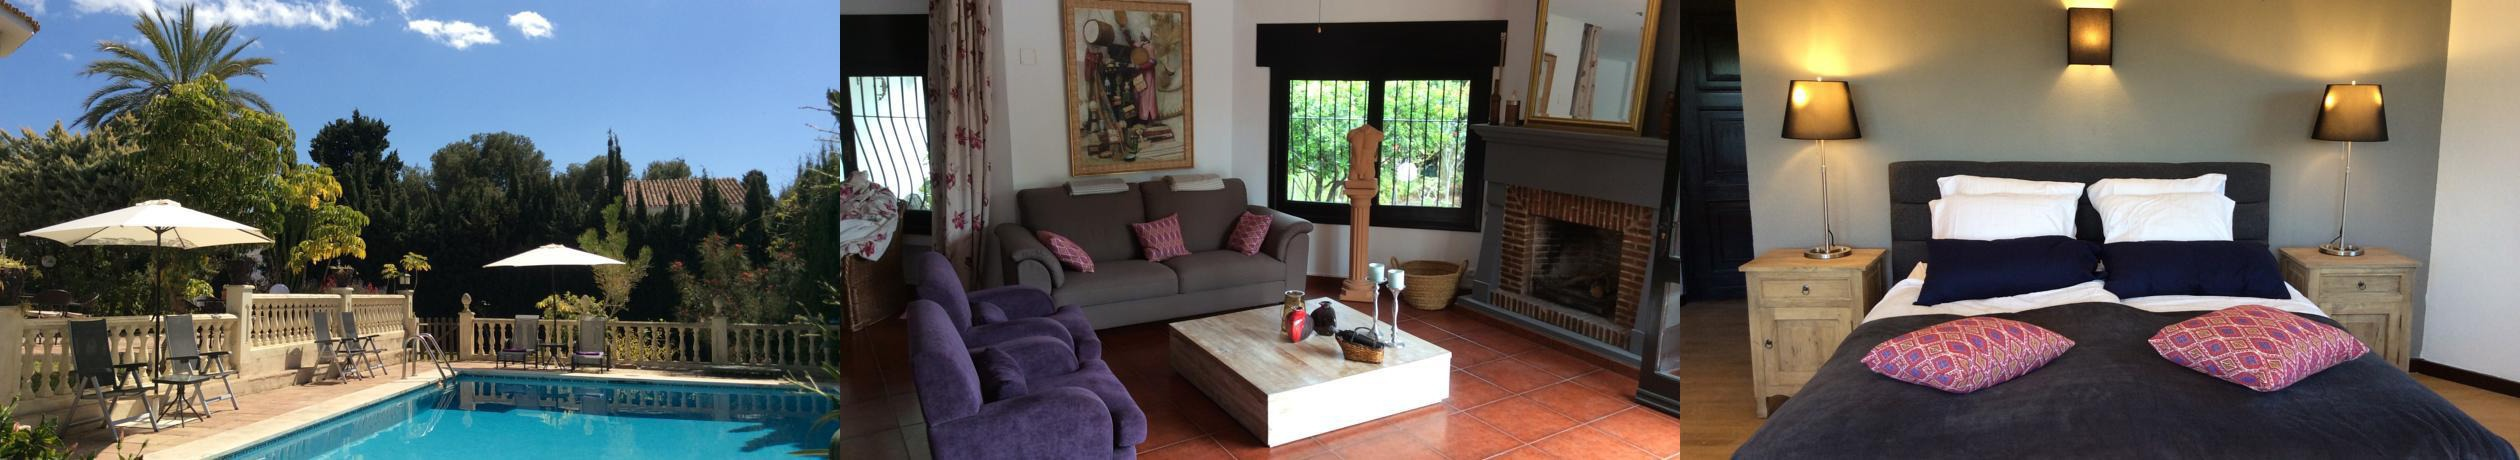 villa-mare-bed-breakfast